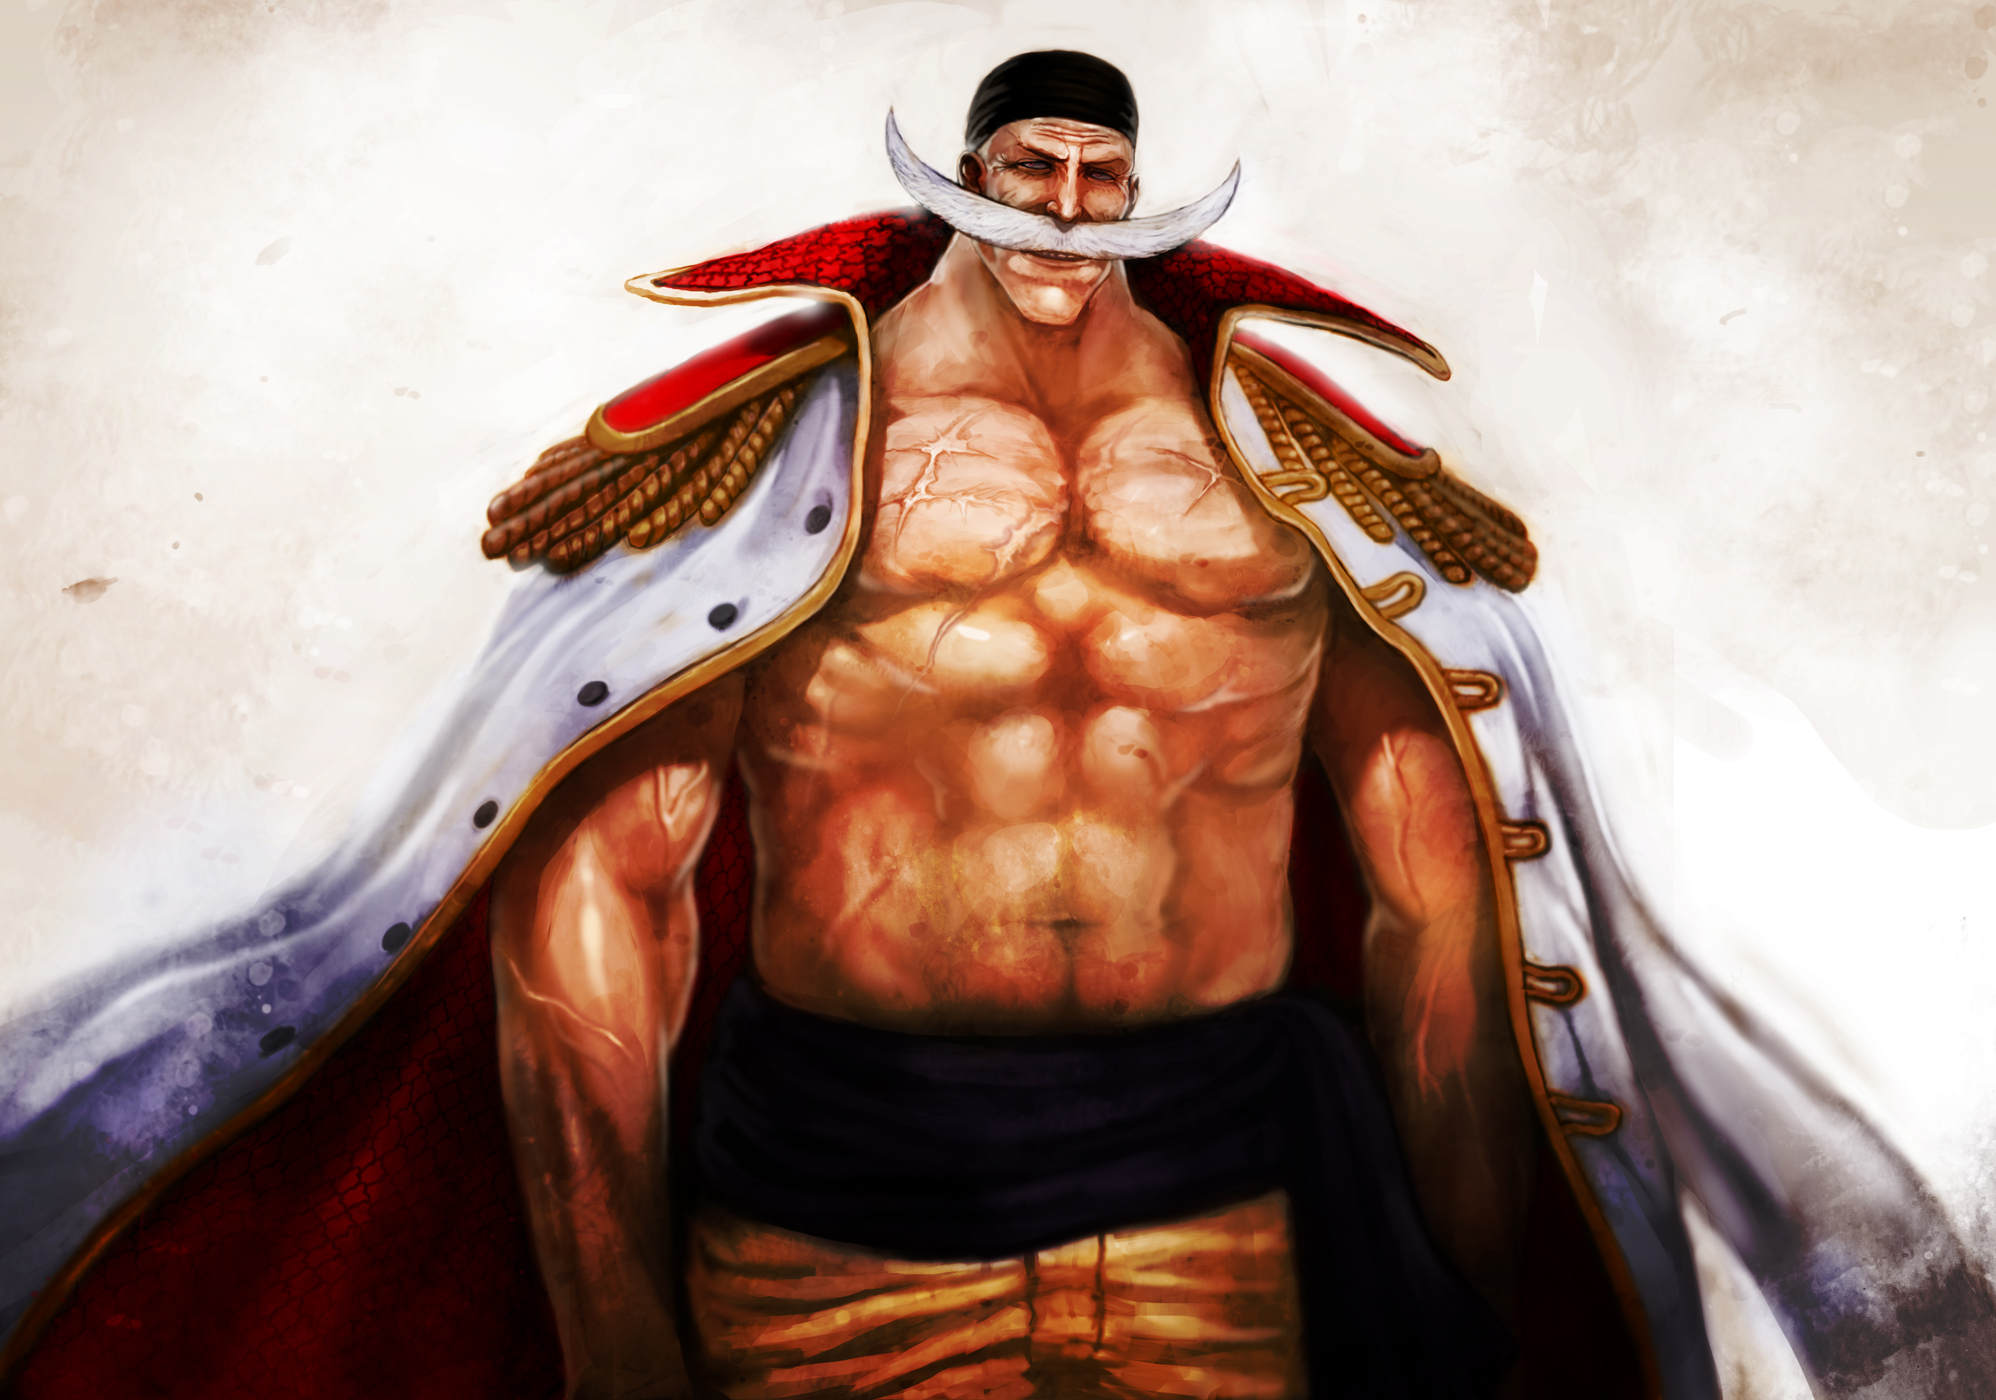 Whitebeard One Piece Fire Pirates Portgas D Ace Hd Wallpapers